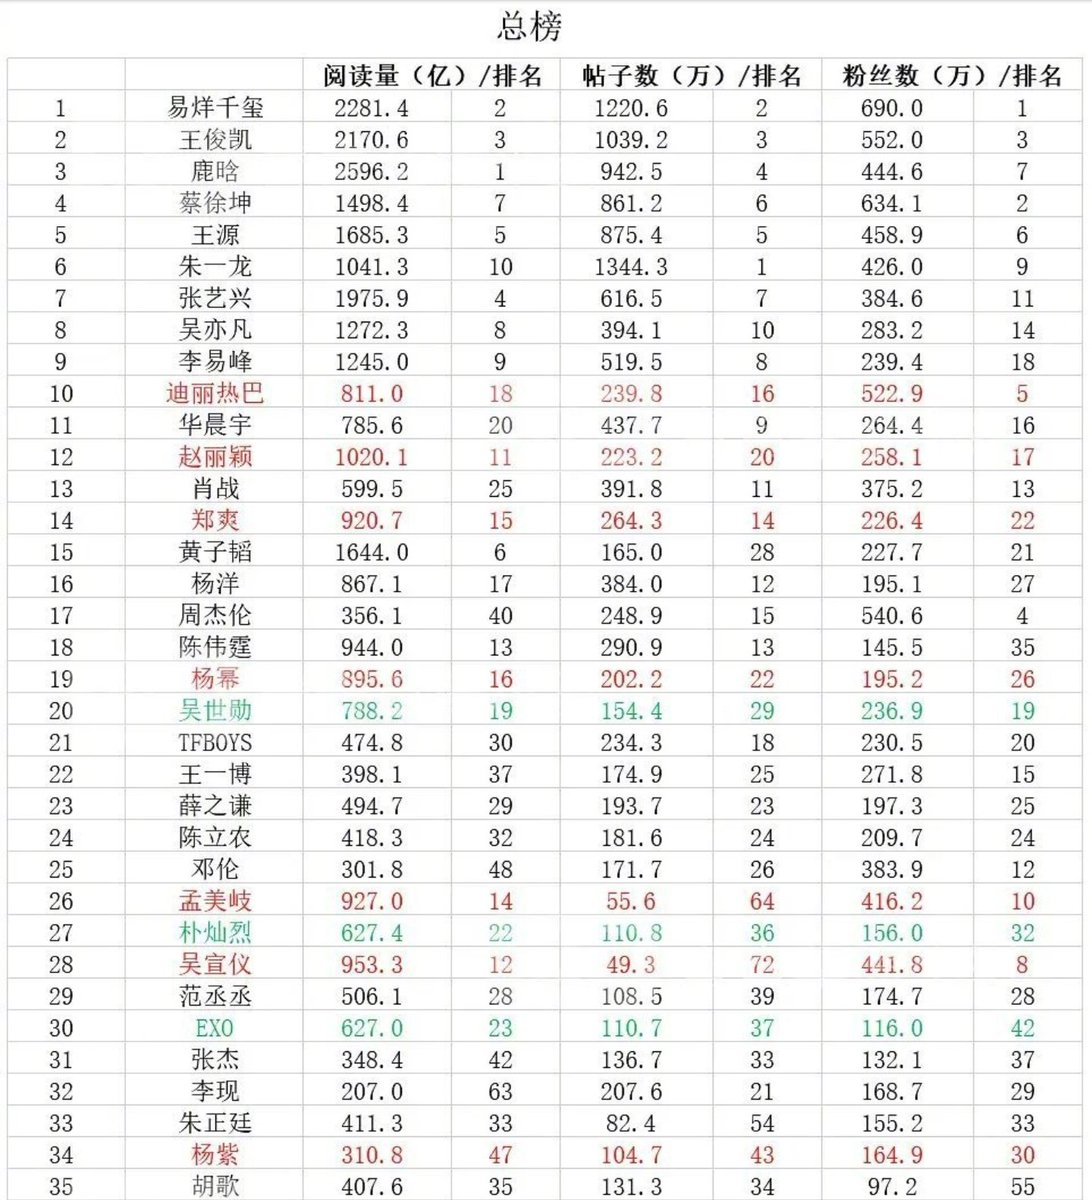 Main ranking showing the popularity of all artists in China based on cumulative activity under hashtag/homepage.  Sehun - 20 (Highest rank among overseas artists)  :  https:// weibointl.api.weibo.cn/share/12429738 5.html?weibo_id=4473042506036407   …   #SEHUN #세훈 #吴世勋<br>http://pic.twitter.com/XnMZn8U9sh